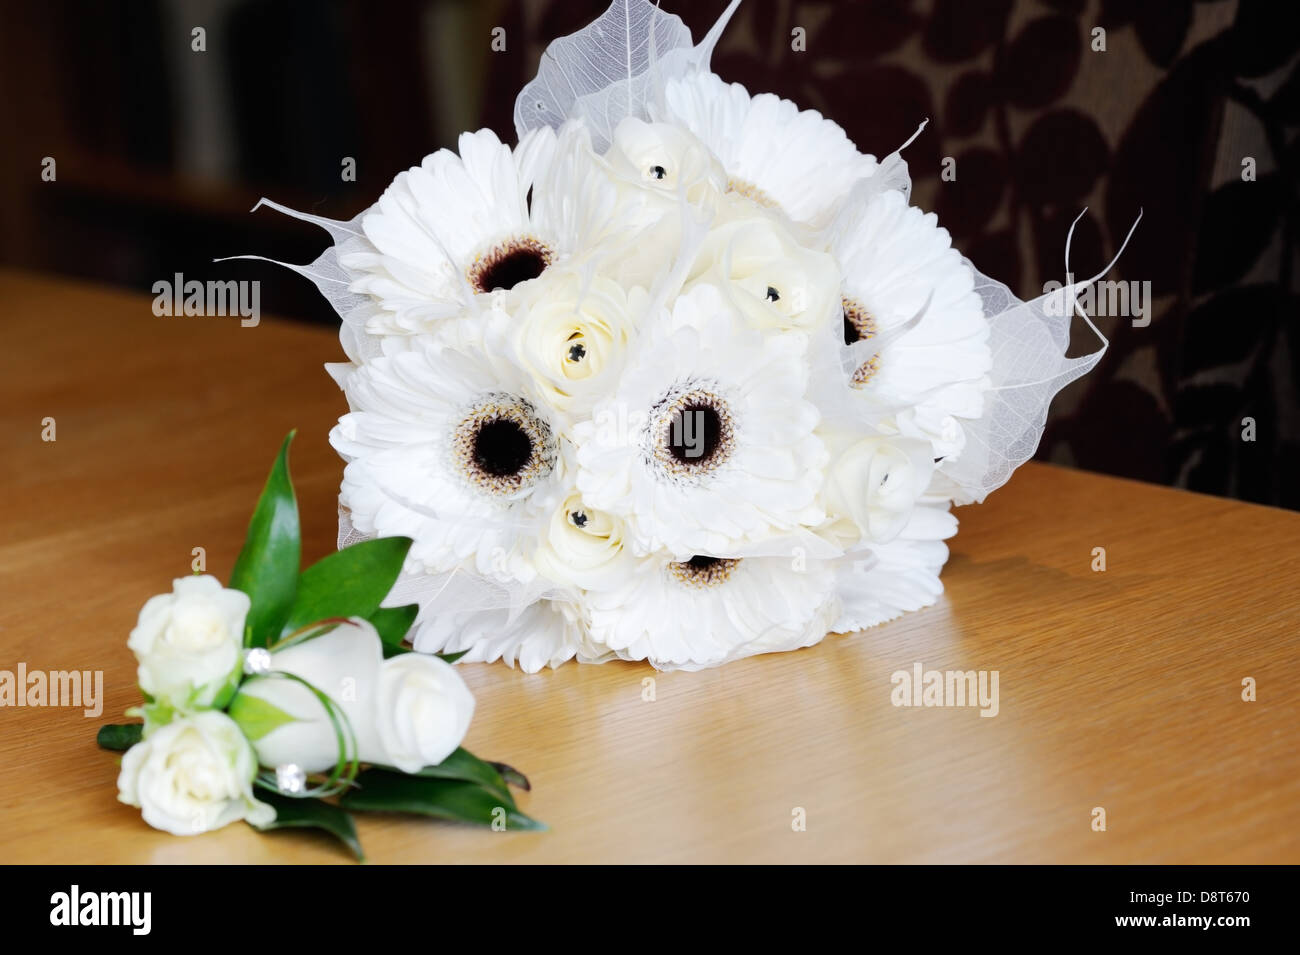 Brides Bunch Of White Flowers And Mothers Corsage Is White Rose On